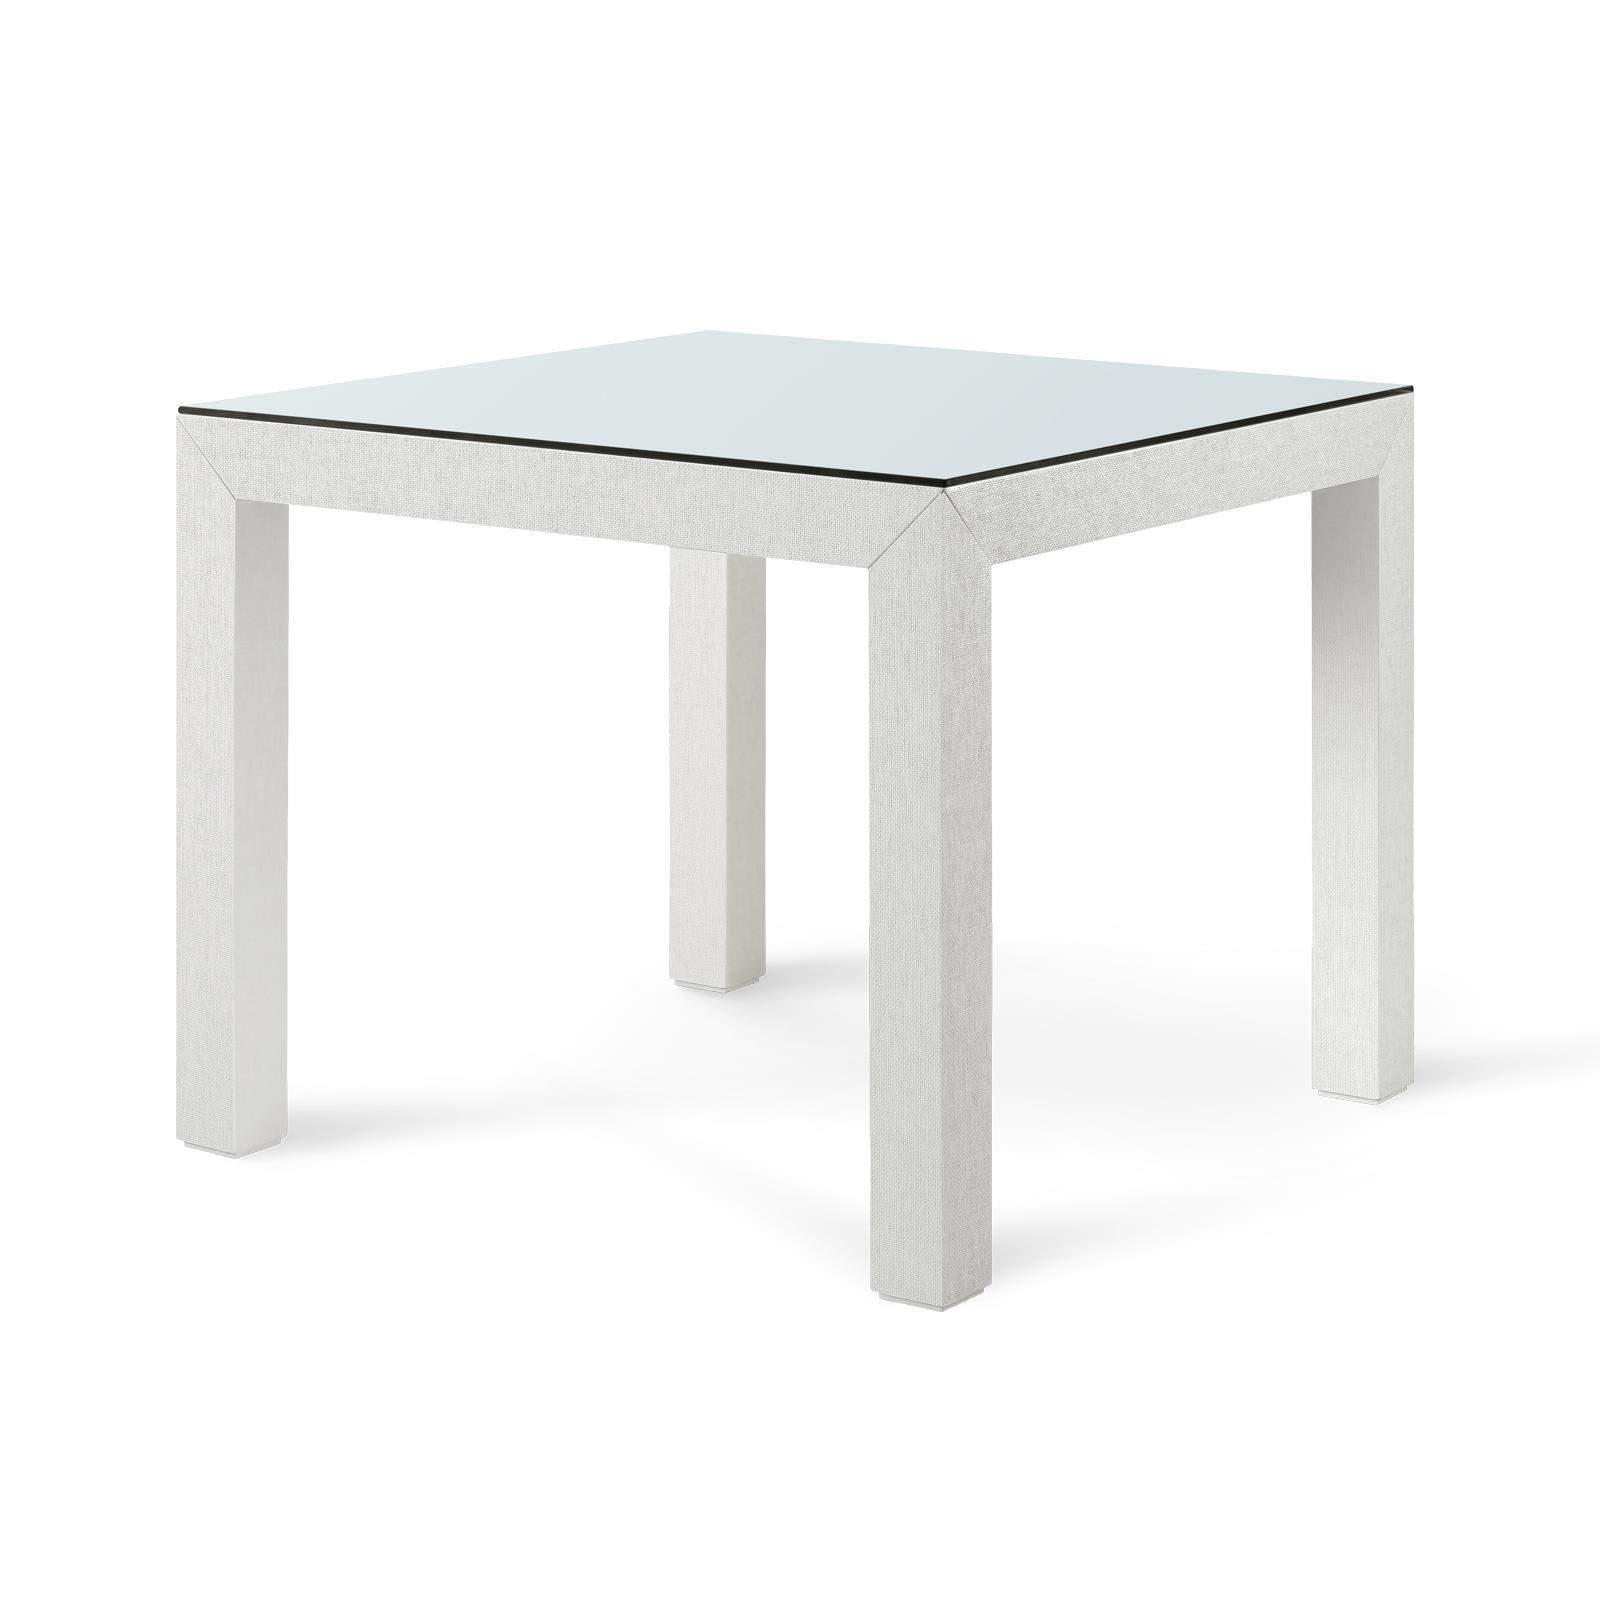 Pleasant Bungalow 5 Valentina Grasscloth Game Table In White Home Interior And Landscaping Elinuenasavecom